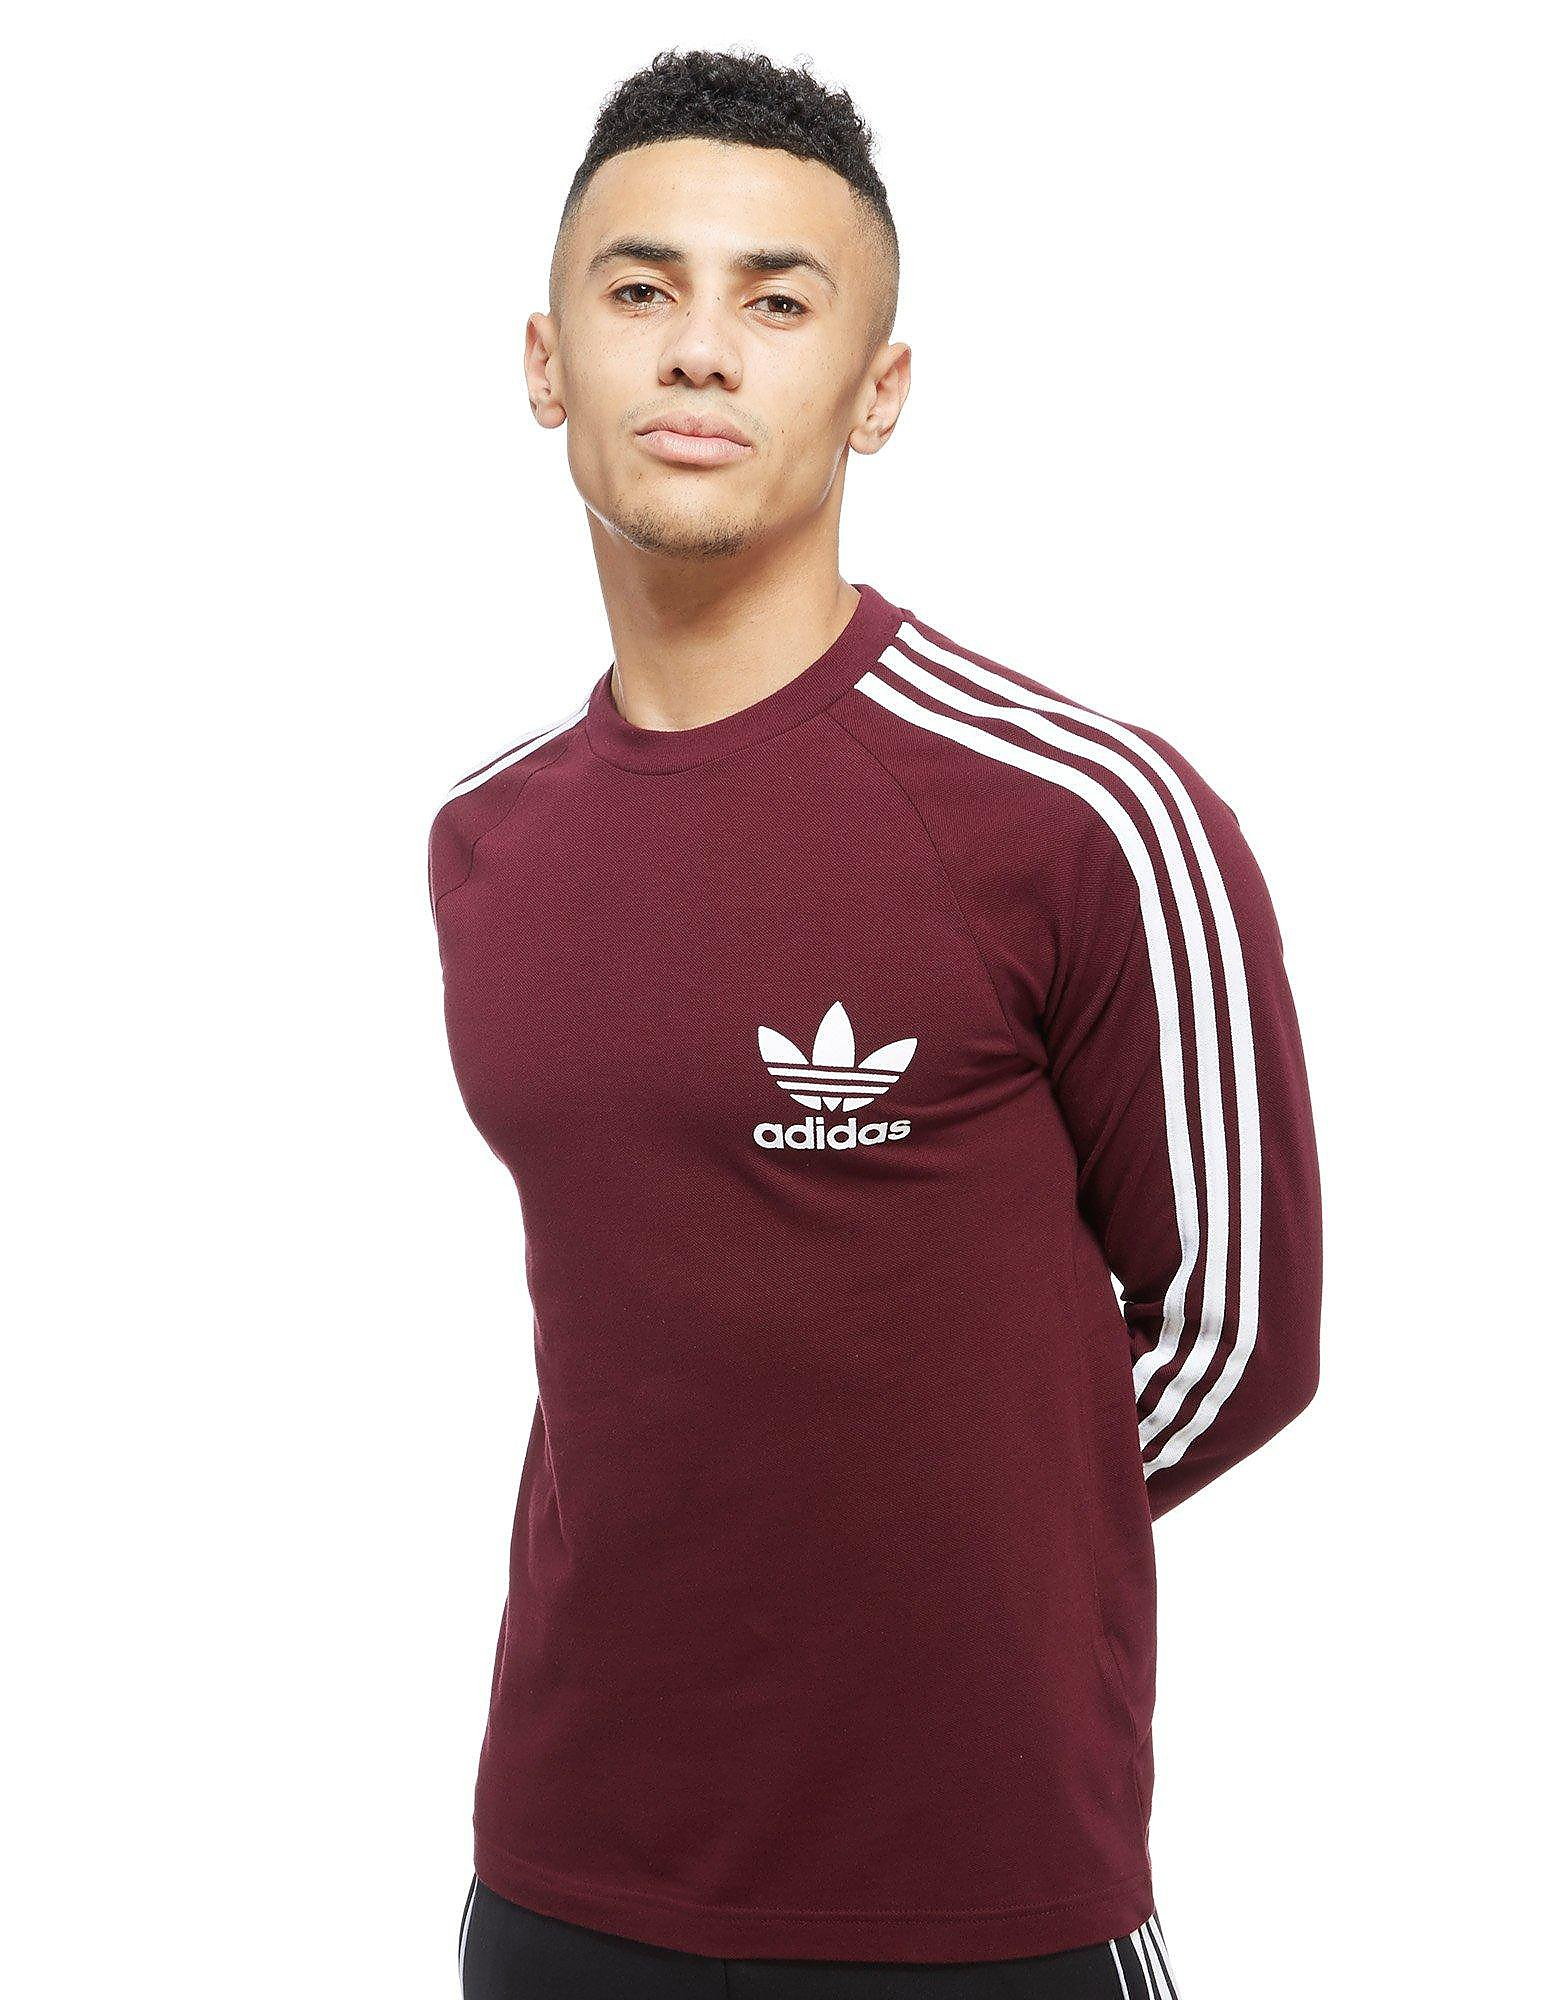 adidas Originals Long Sleeve California Pique T-Shirt